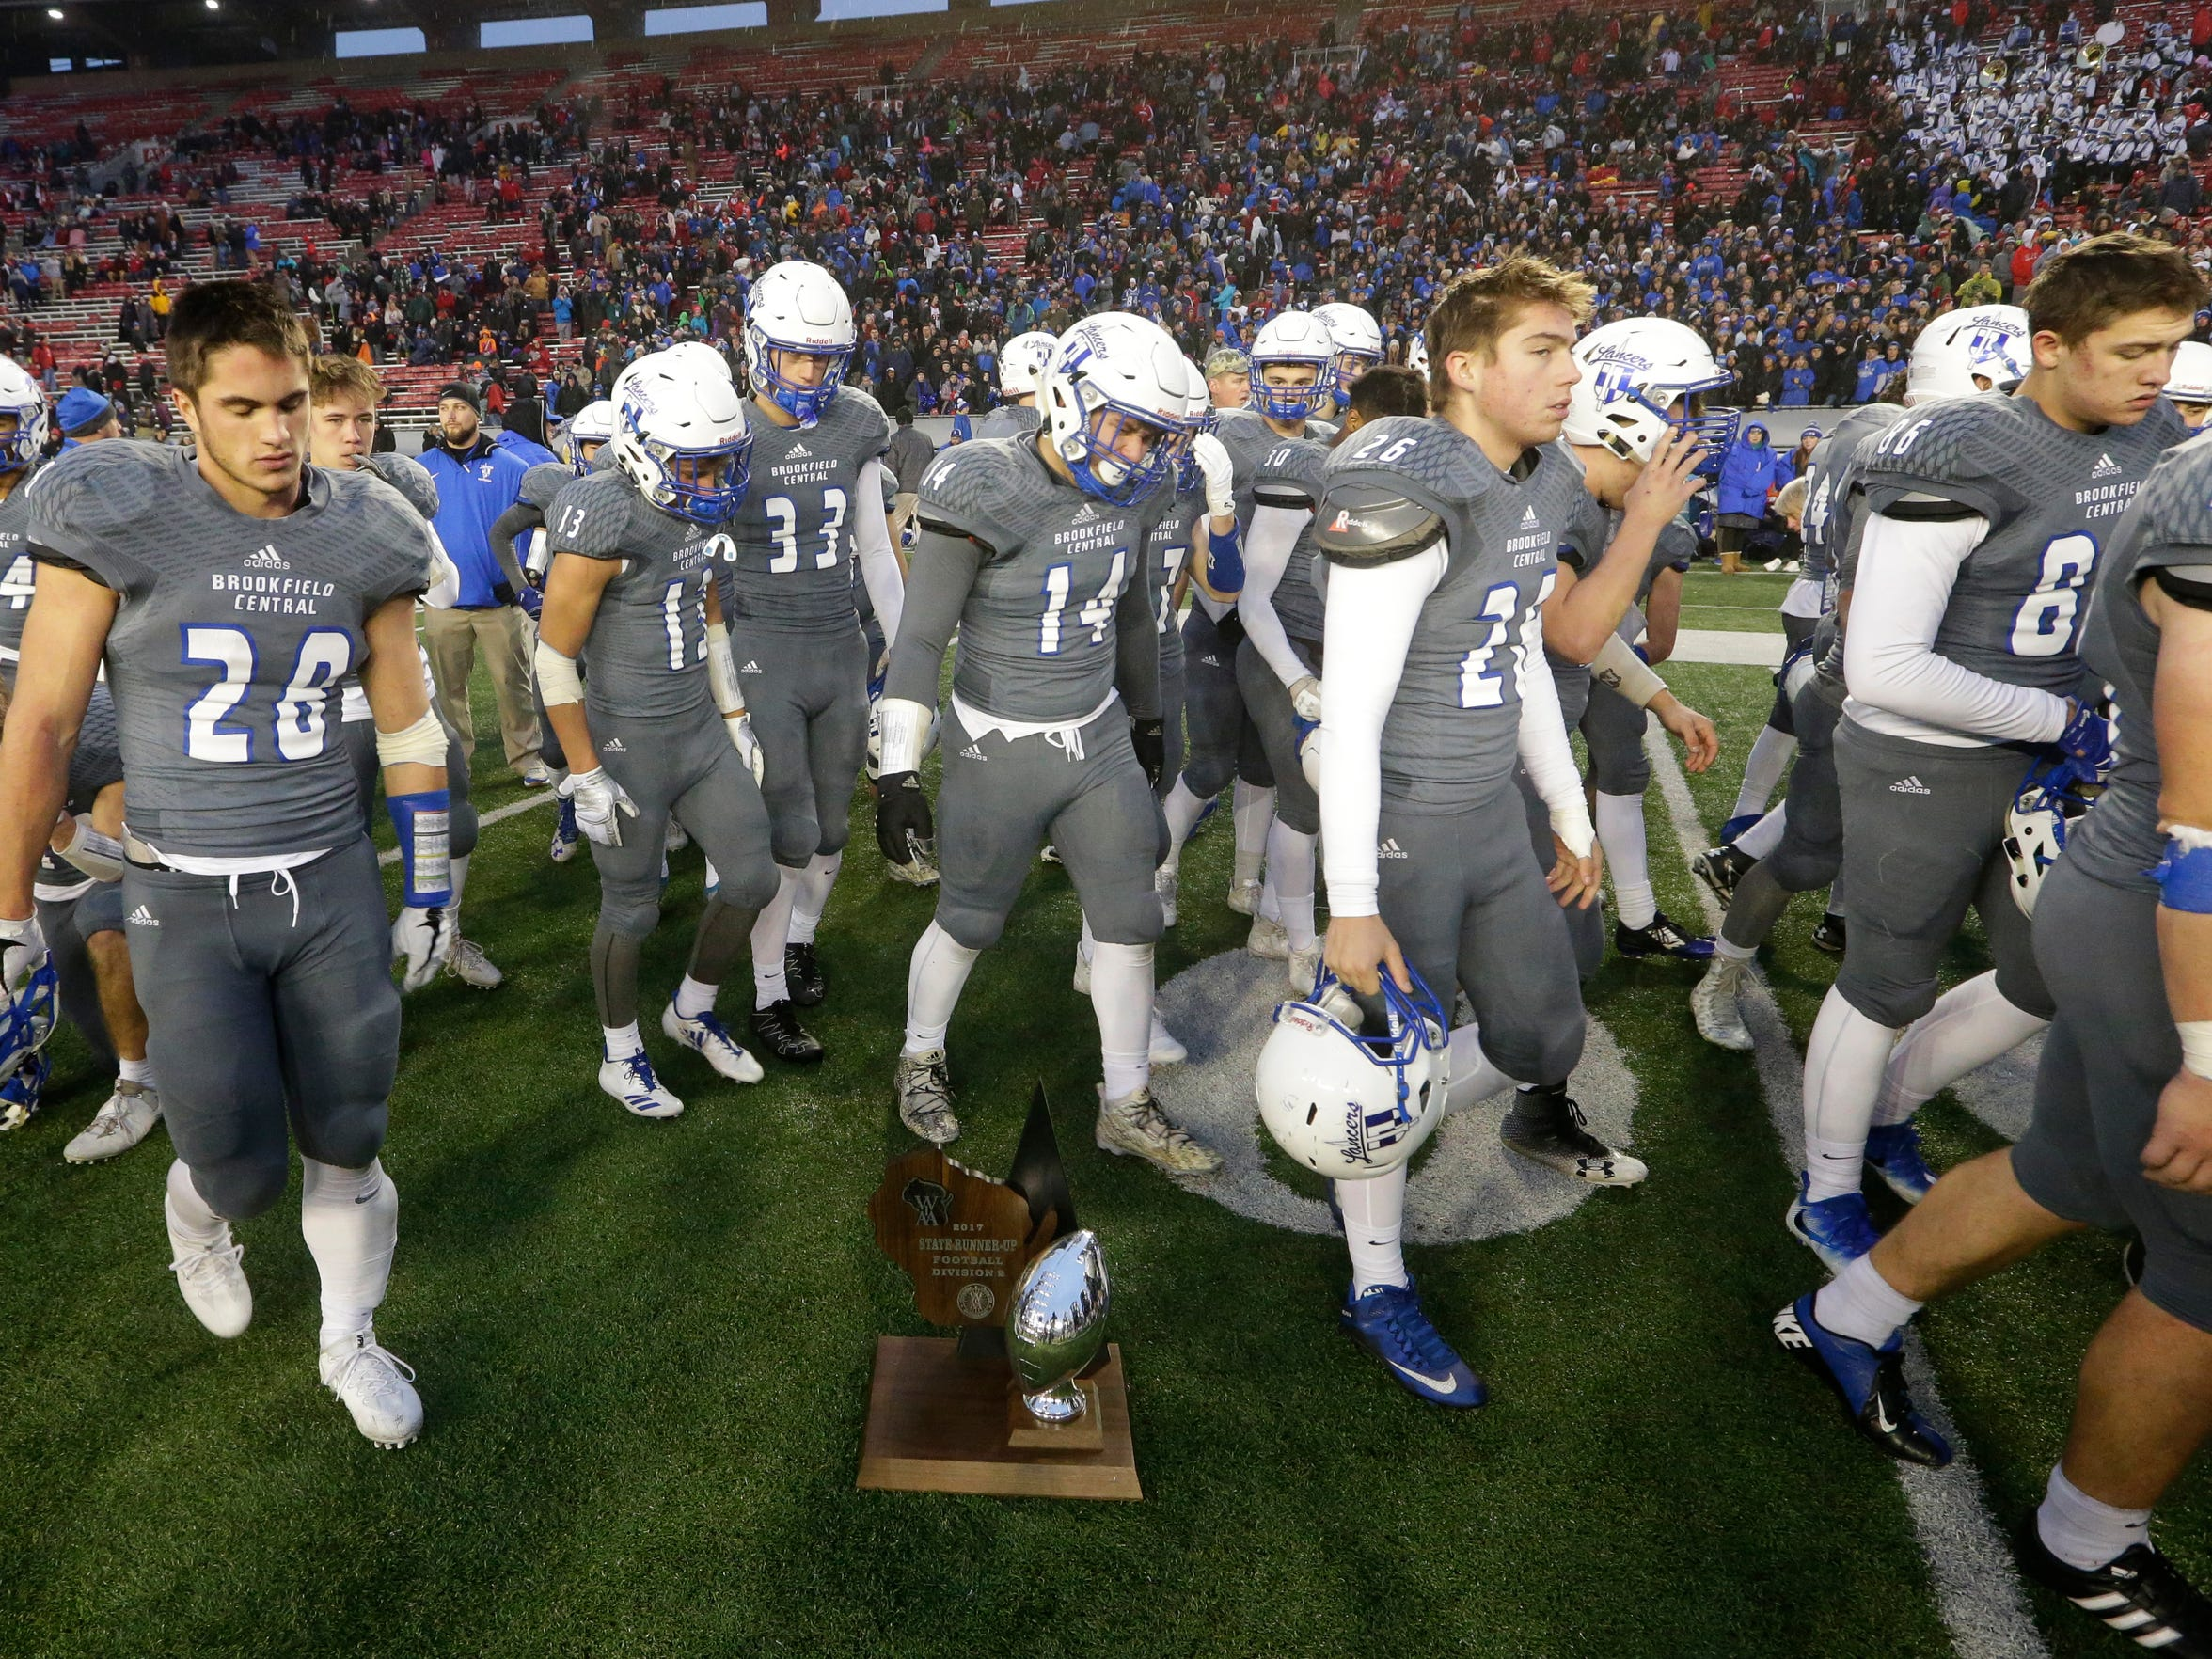 Brookfield Central players pass their runner-up trophy